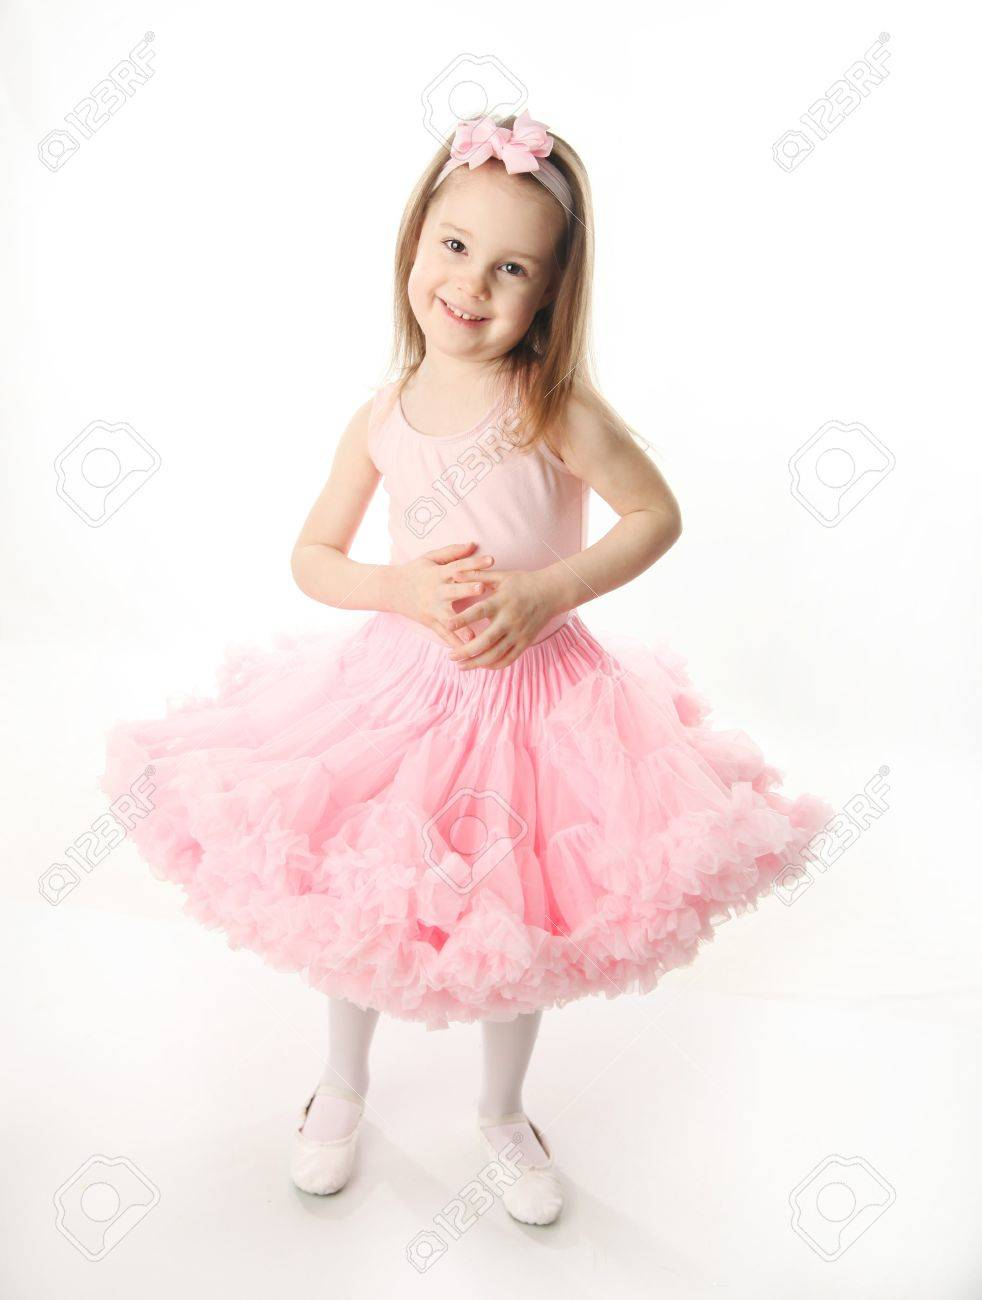 Portrait of an adorable preschool age girl playing dress up wearing a ballet tutu, isolated on white - 9939566